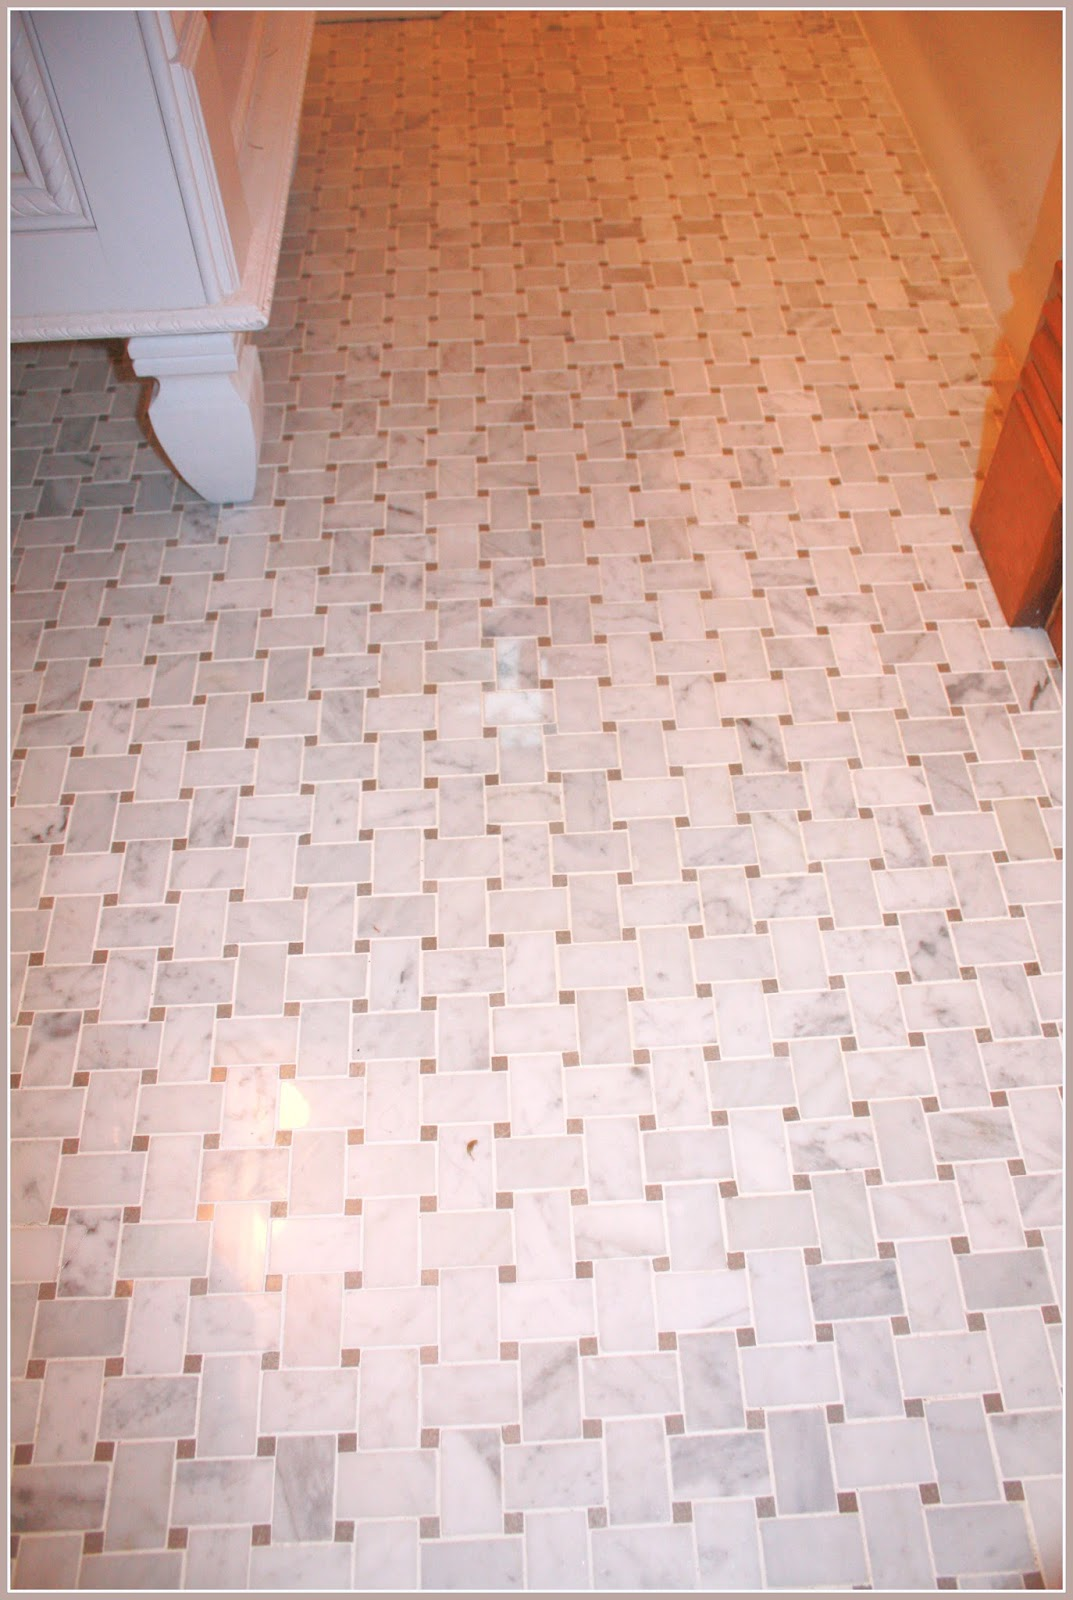 Basket weave floor tile decoration using white marble basketweave tile for bathroom flooring dailygadgetfo Choice Image